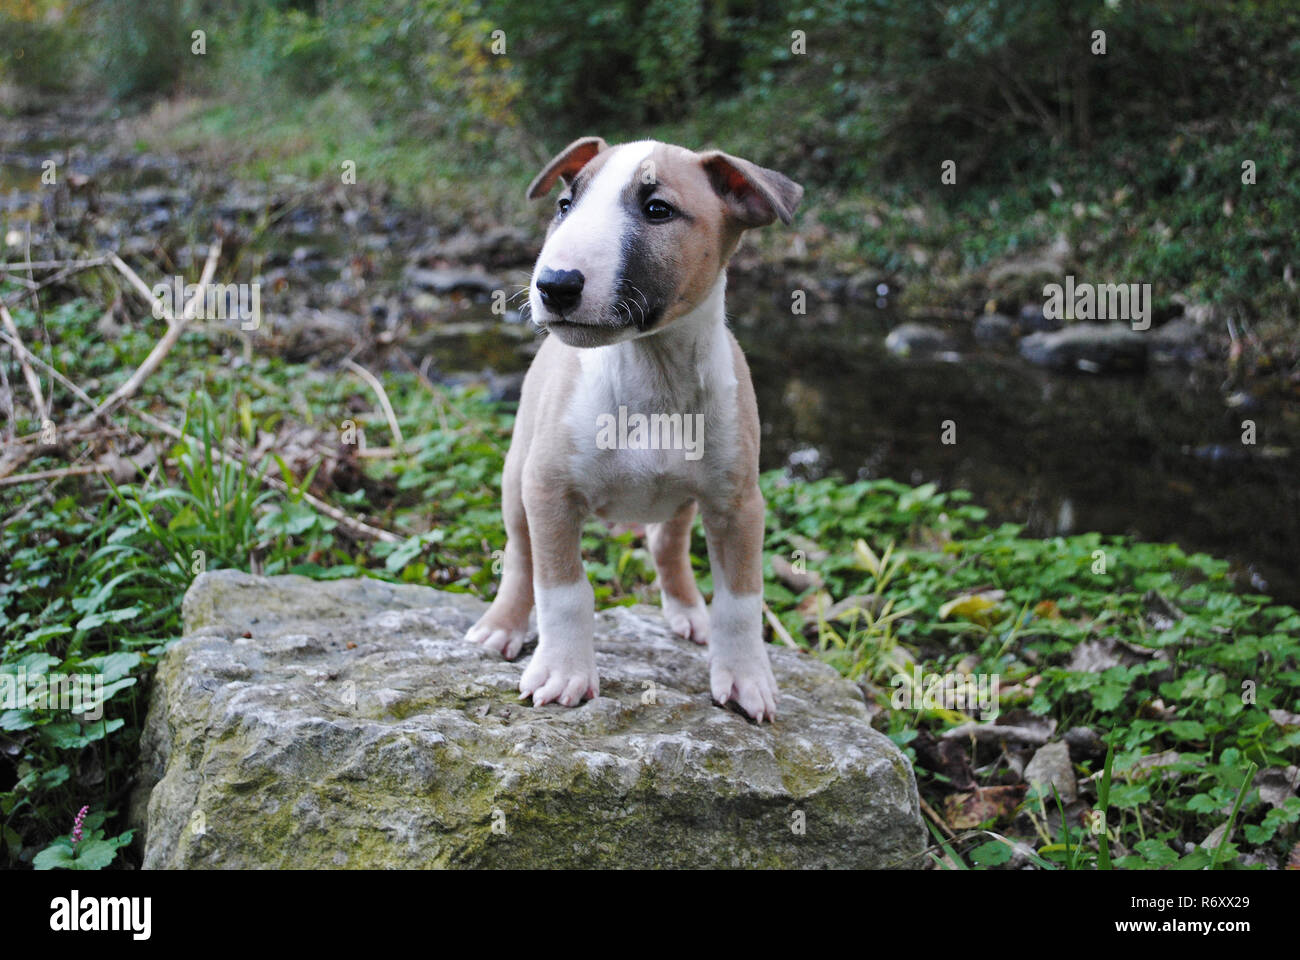 english bull terrier puppy standing on a rock - Stock Image